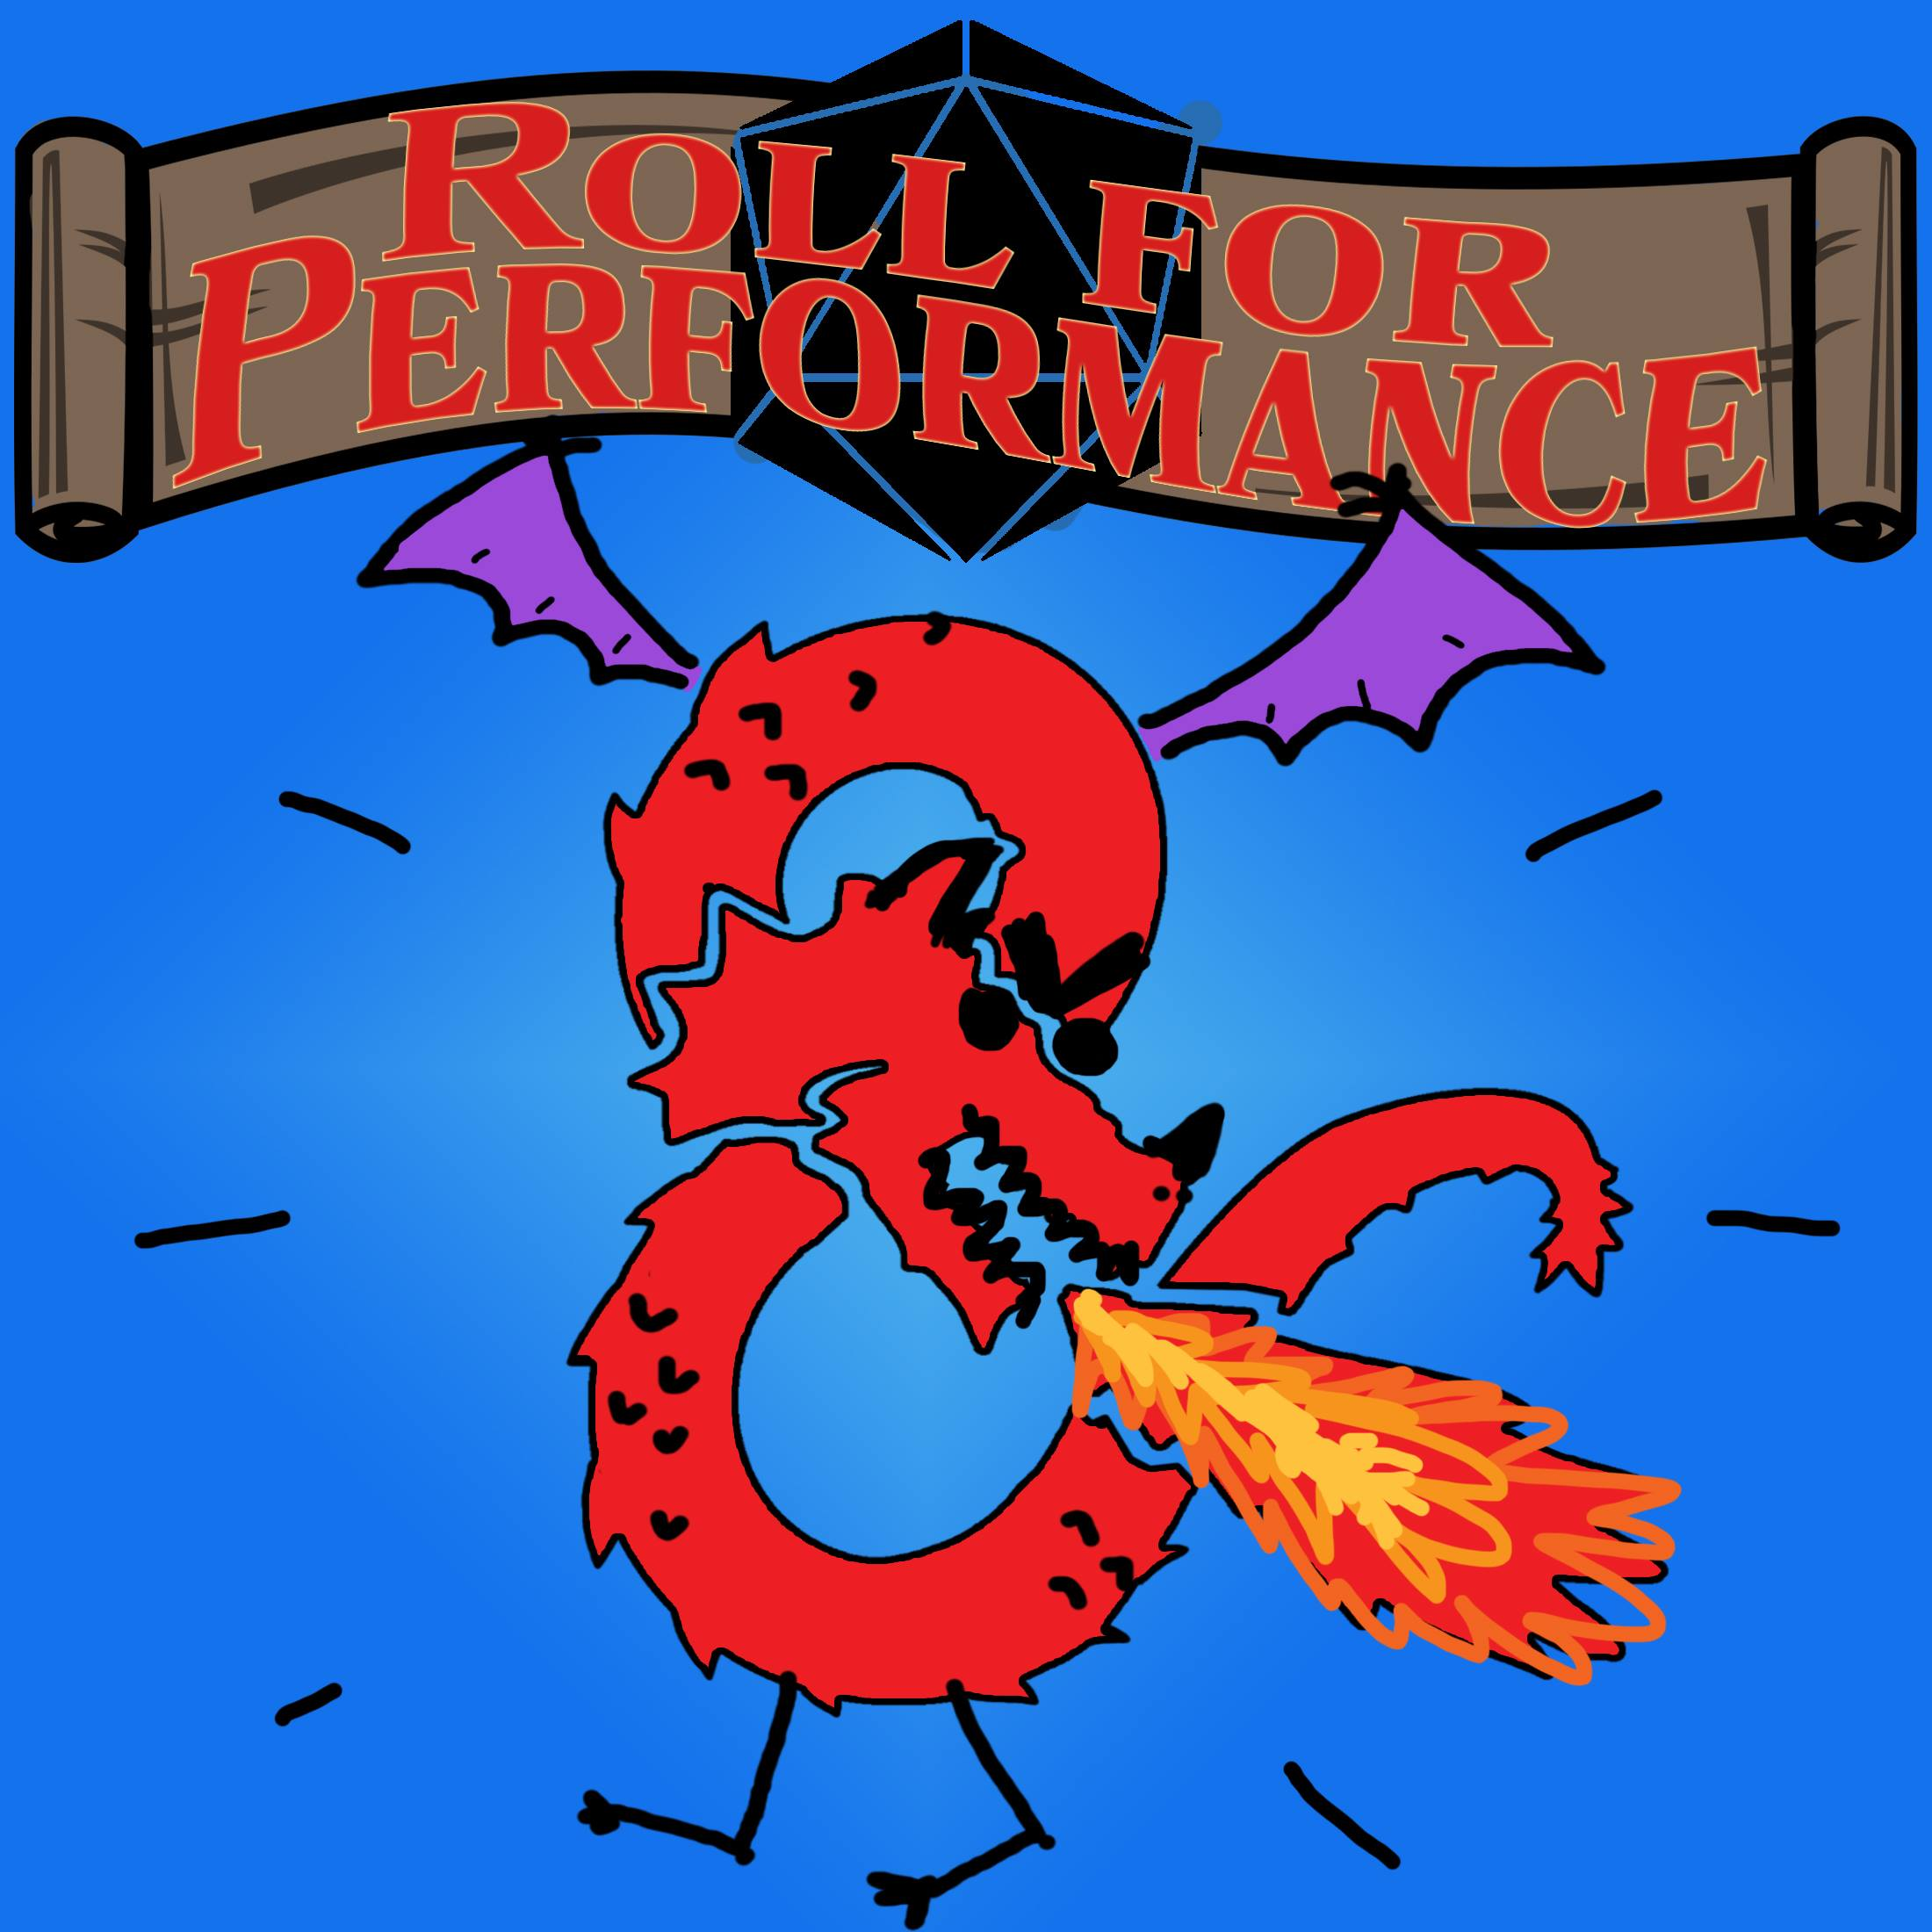 Roll for Performance